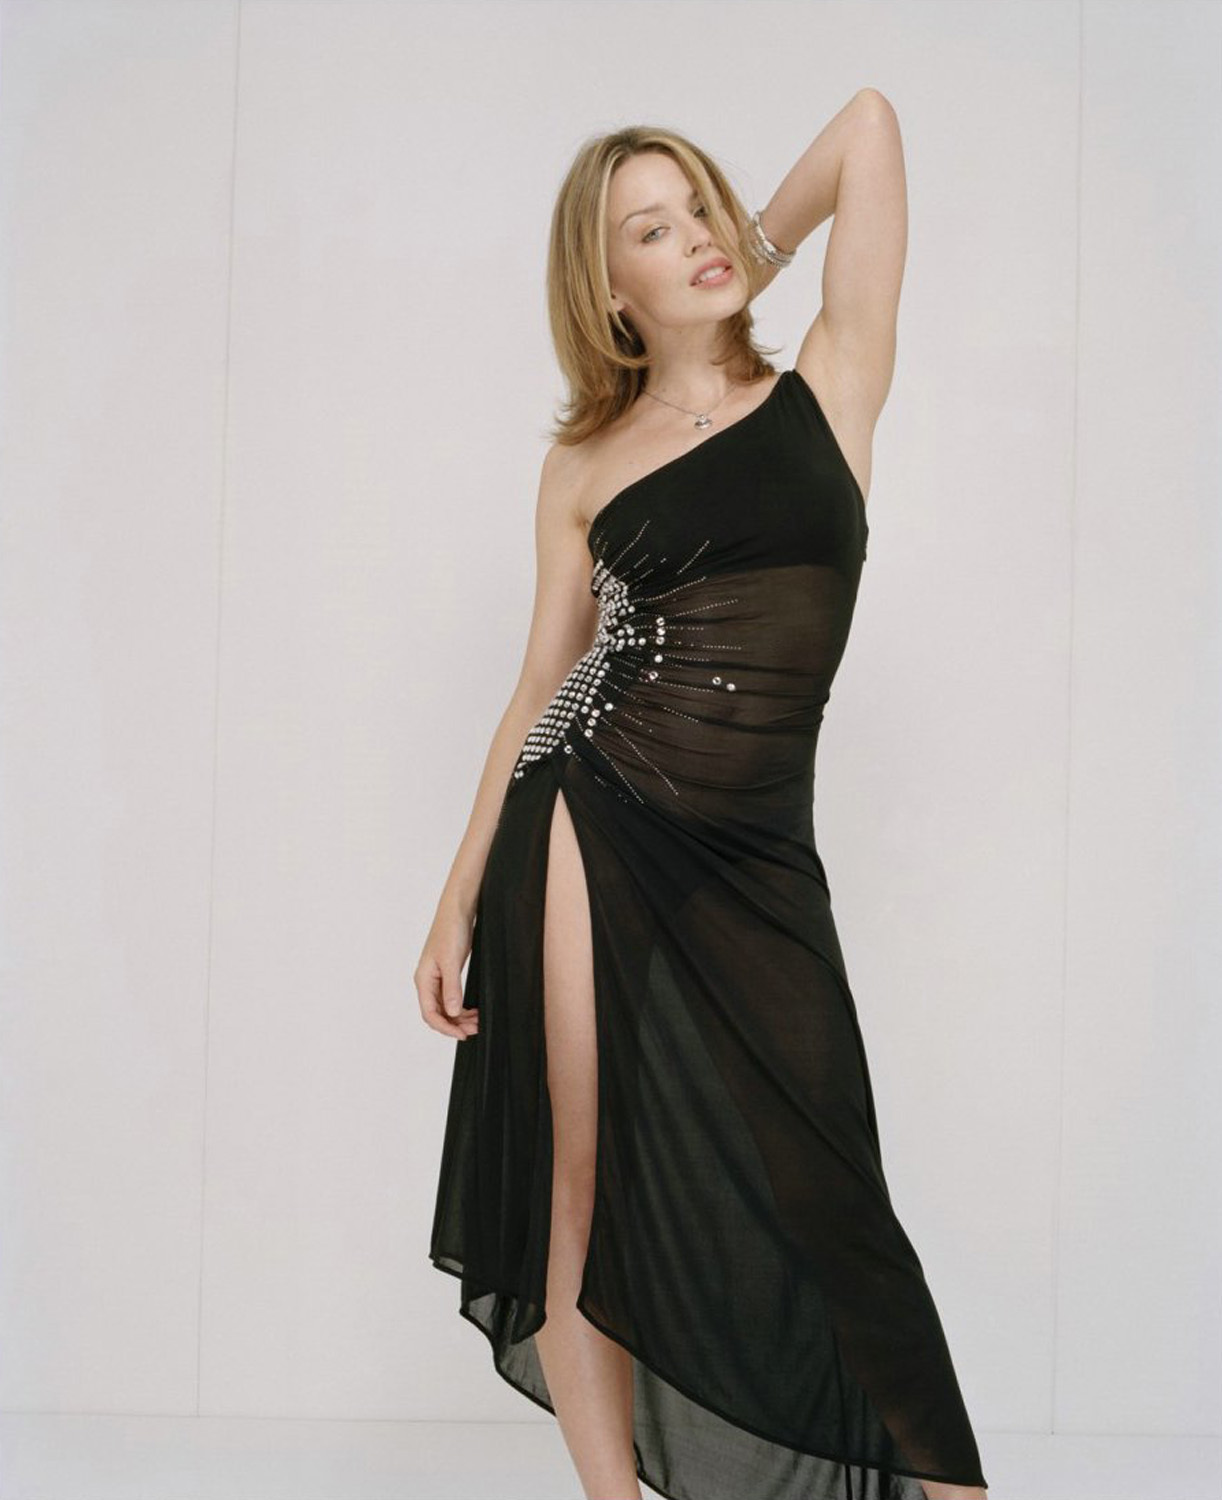 kylie minogue - photo #48